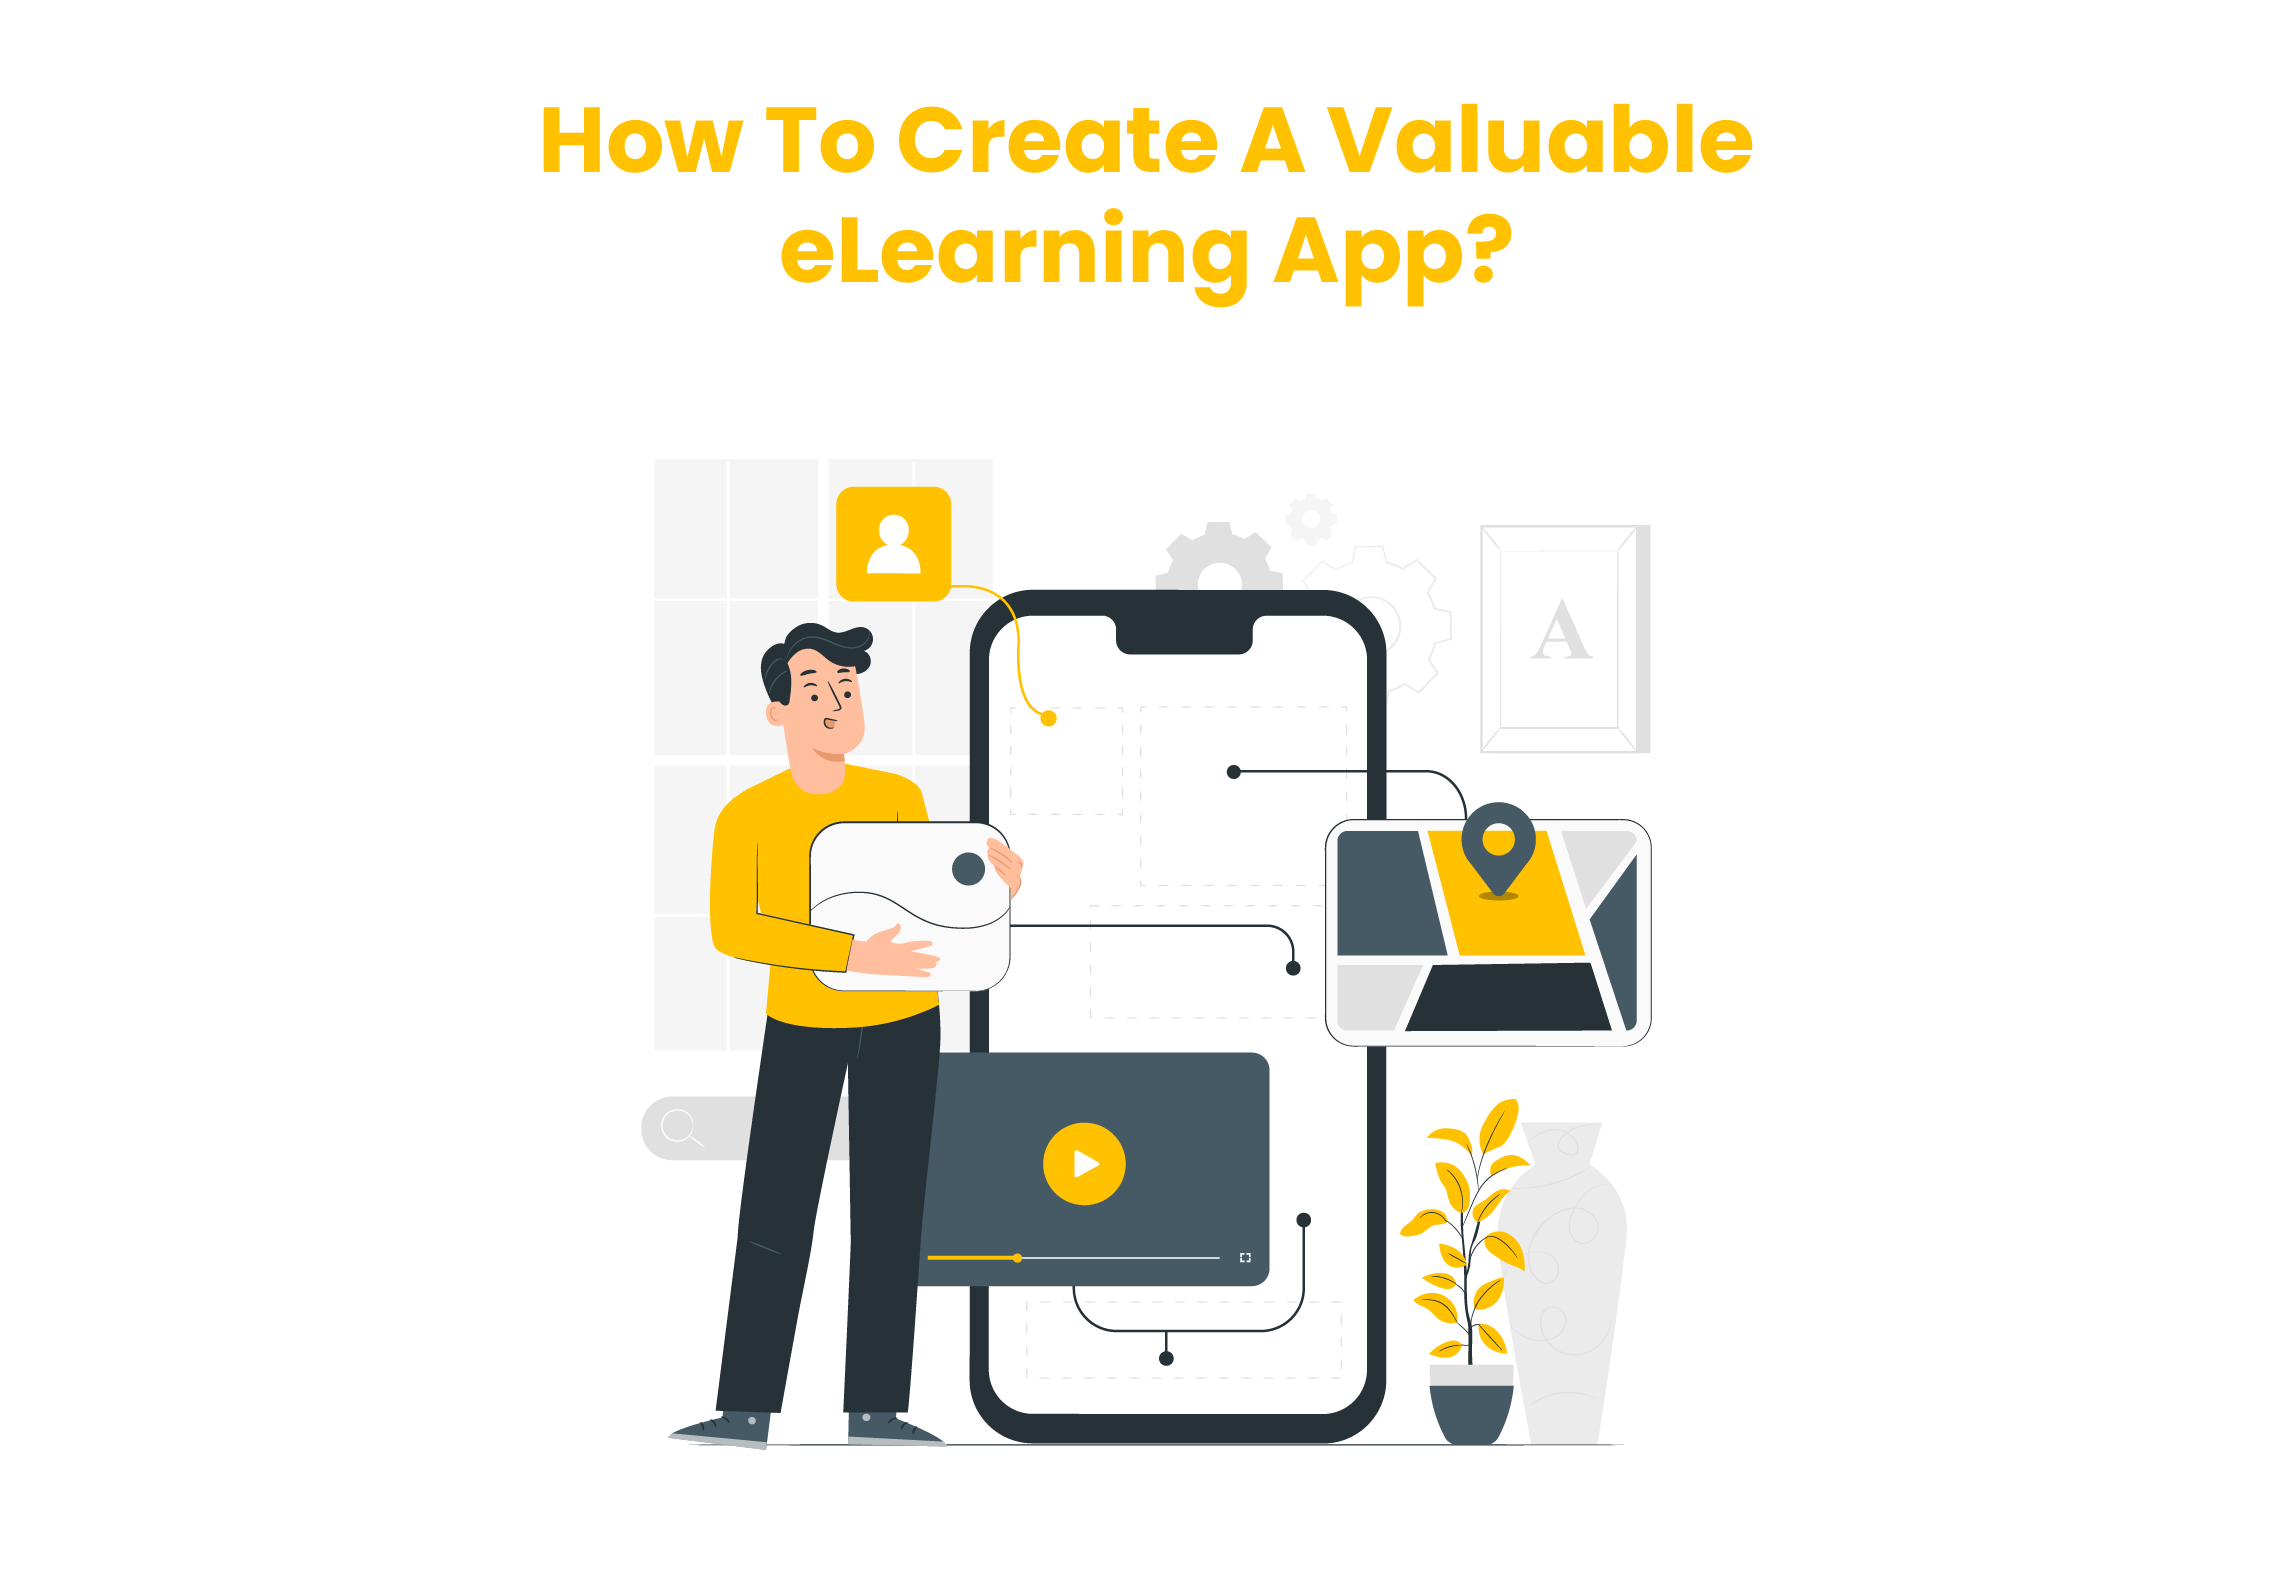 How To Create A Valuable eLearning App?